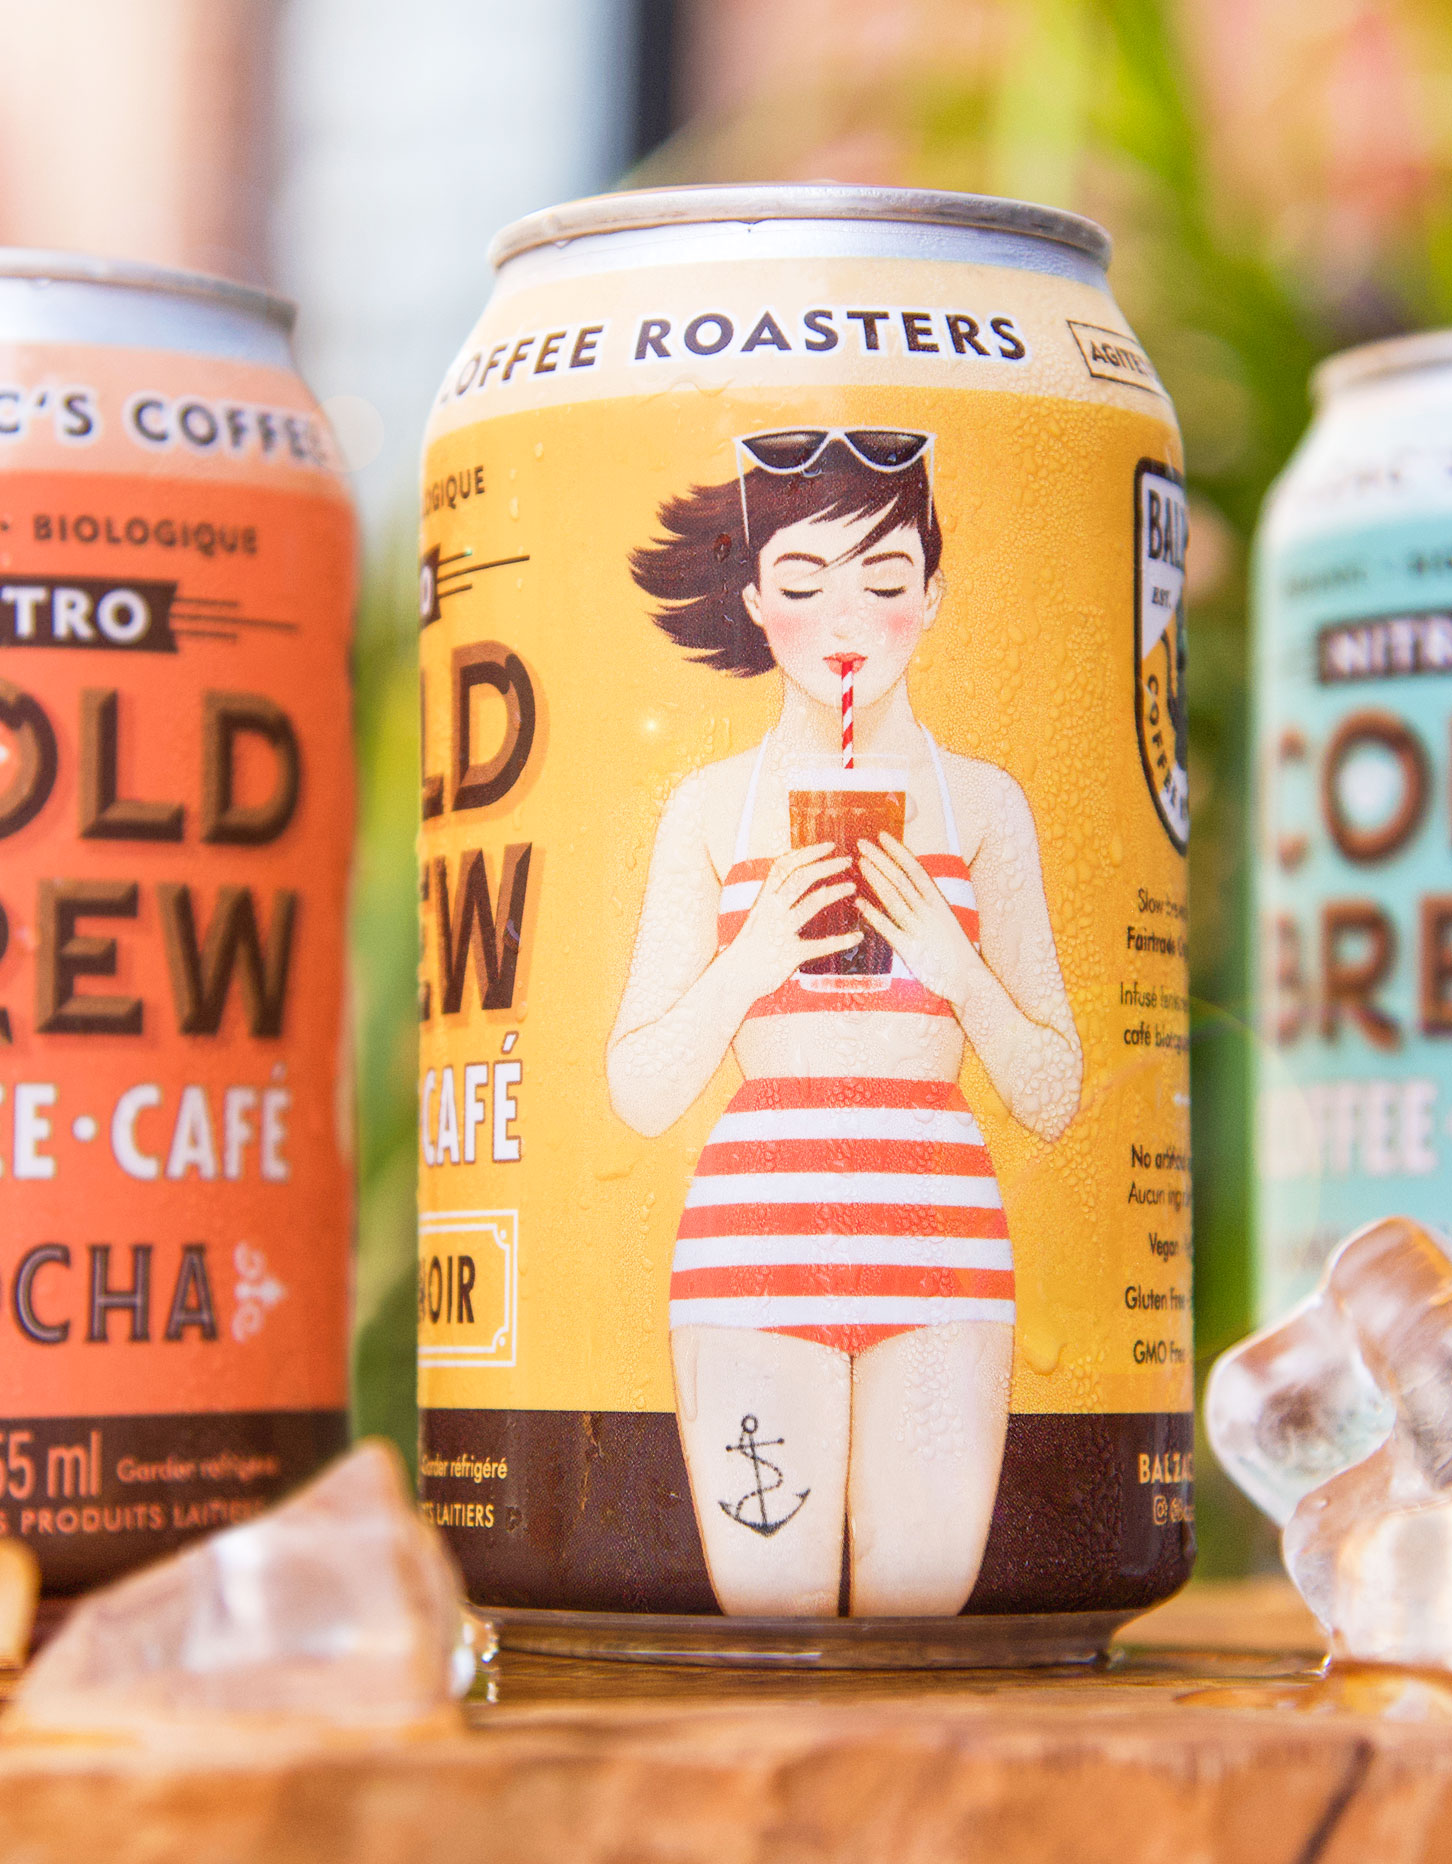 Chad Roberts Design Ltd. Balzac's Coffee Roasters Cold Brew Cans Package Design